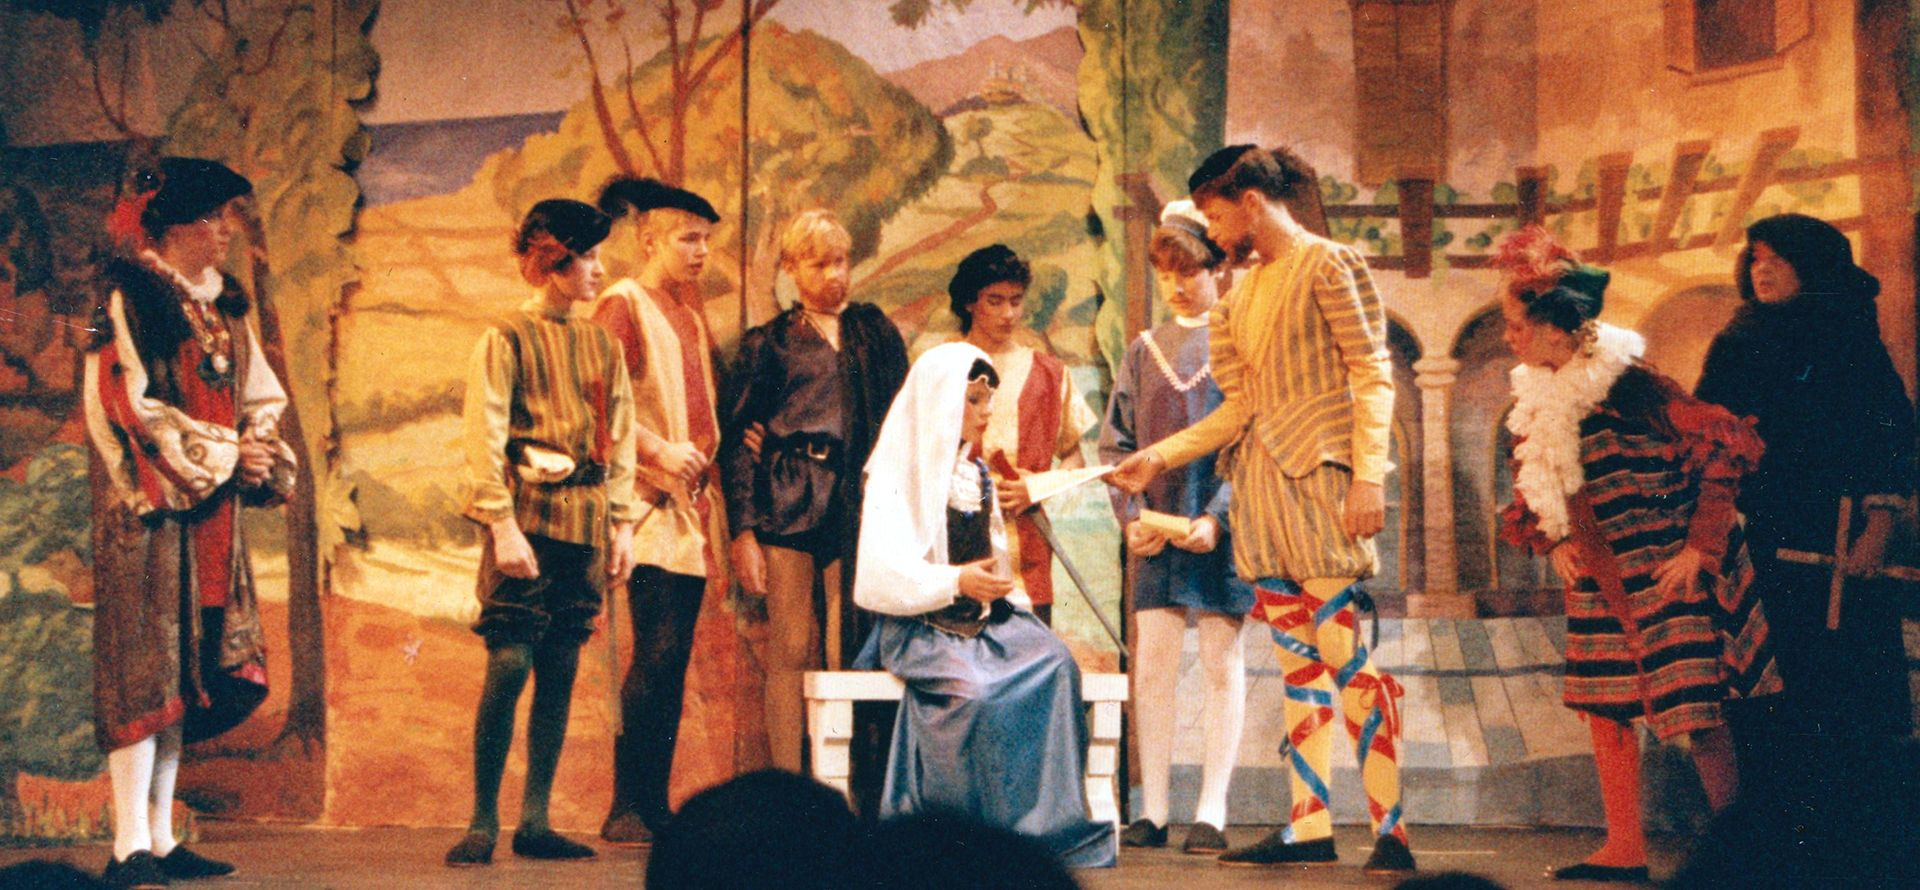 1986, Twelfth Night